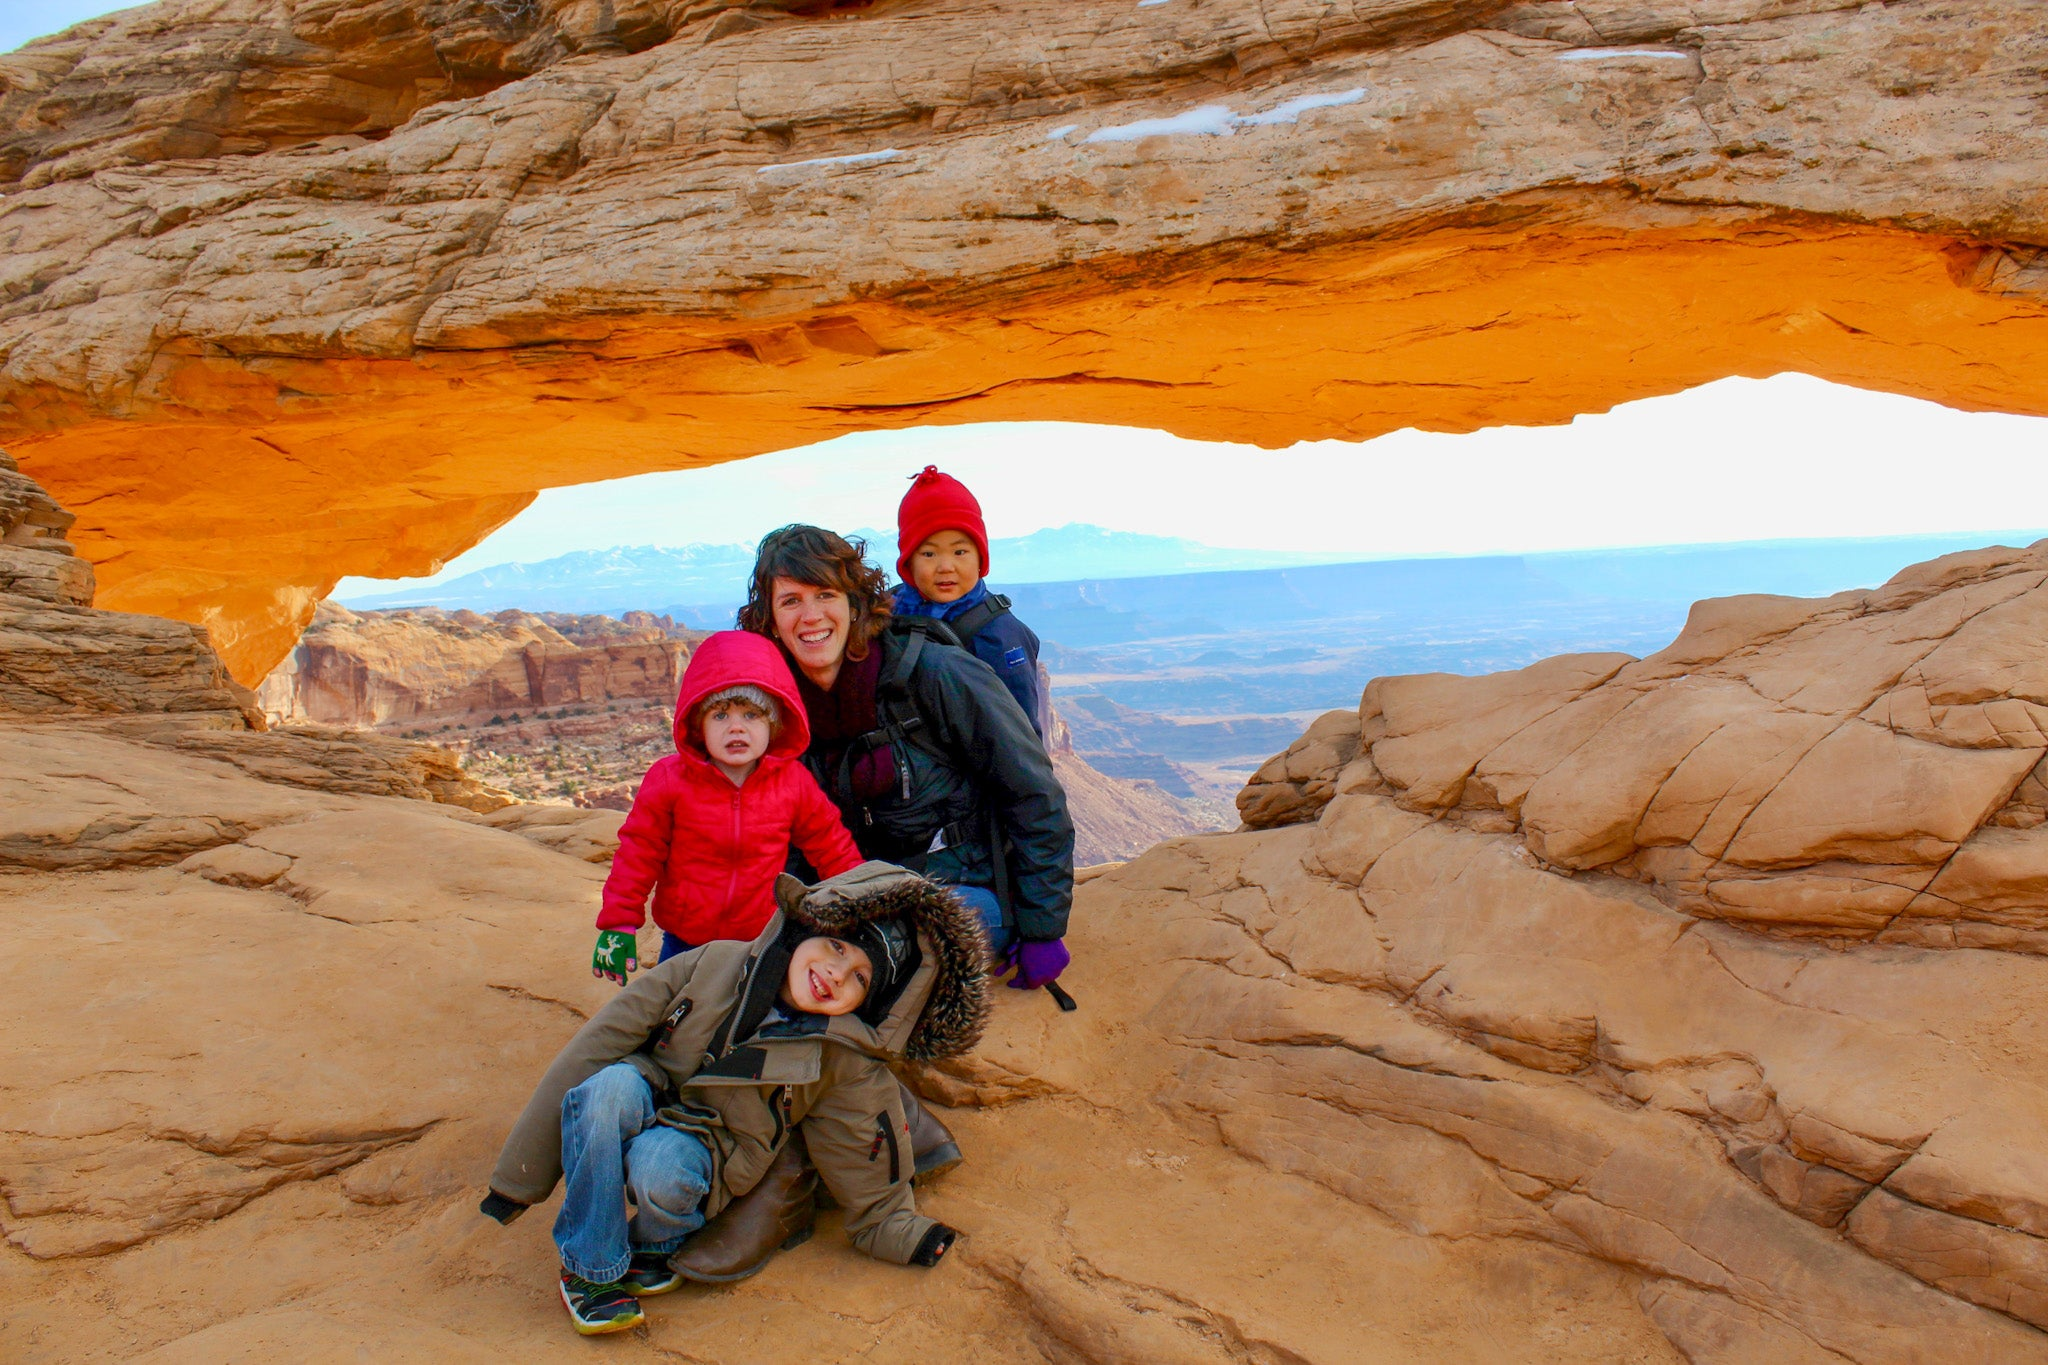 A Parent's Advice for Getting Outside with a Special Needs Kid - Family Hike